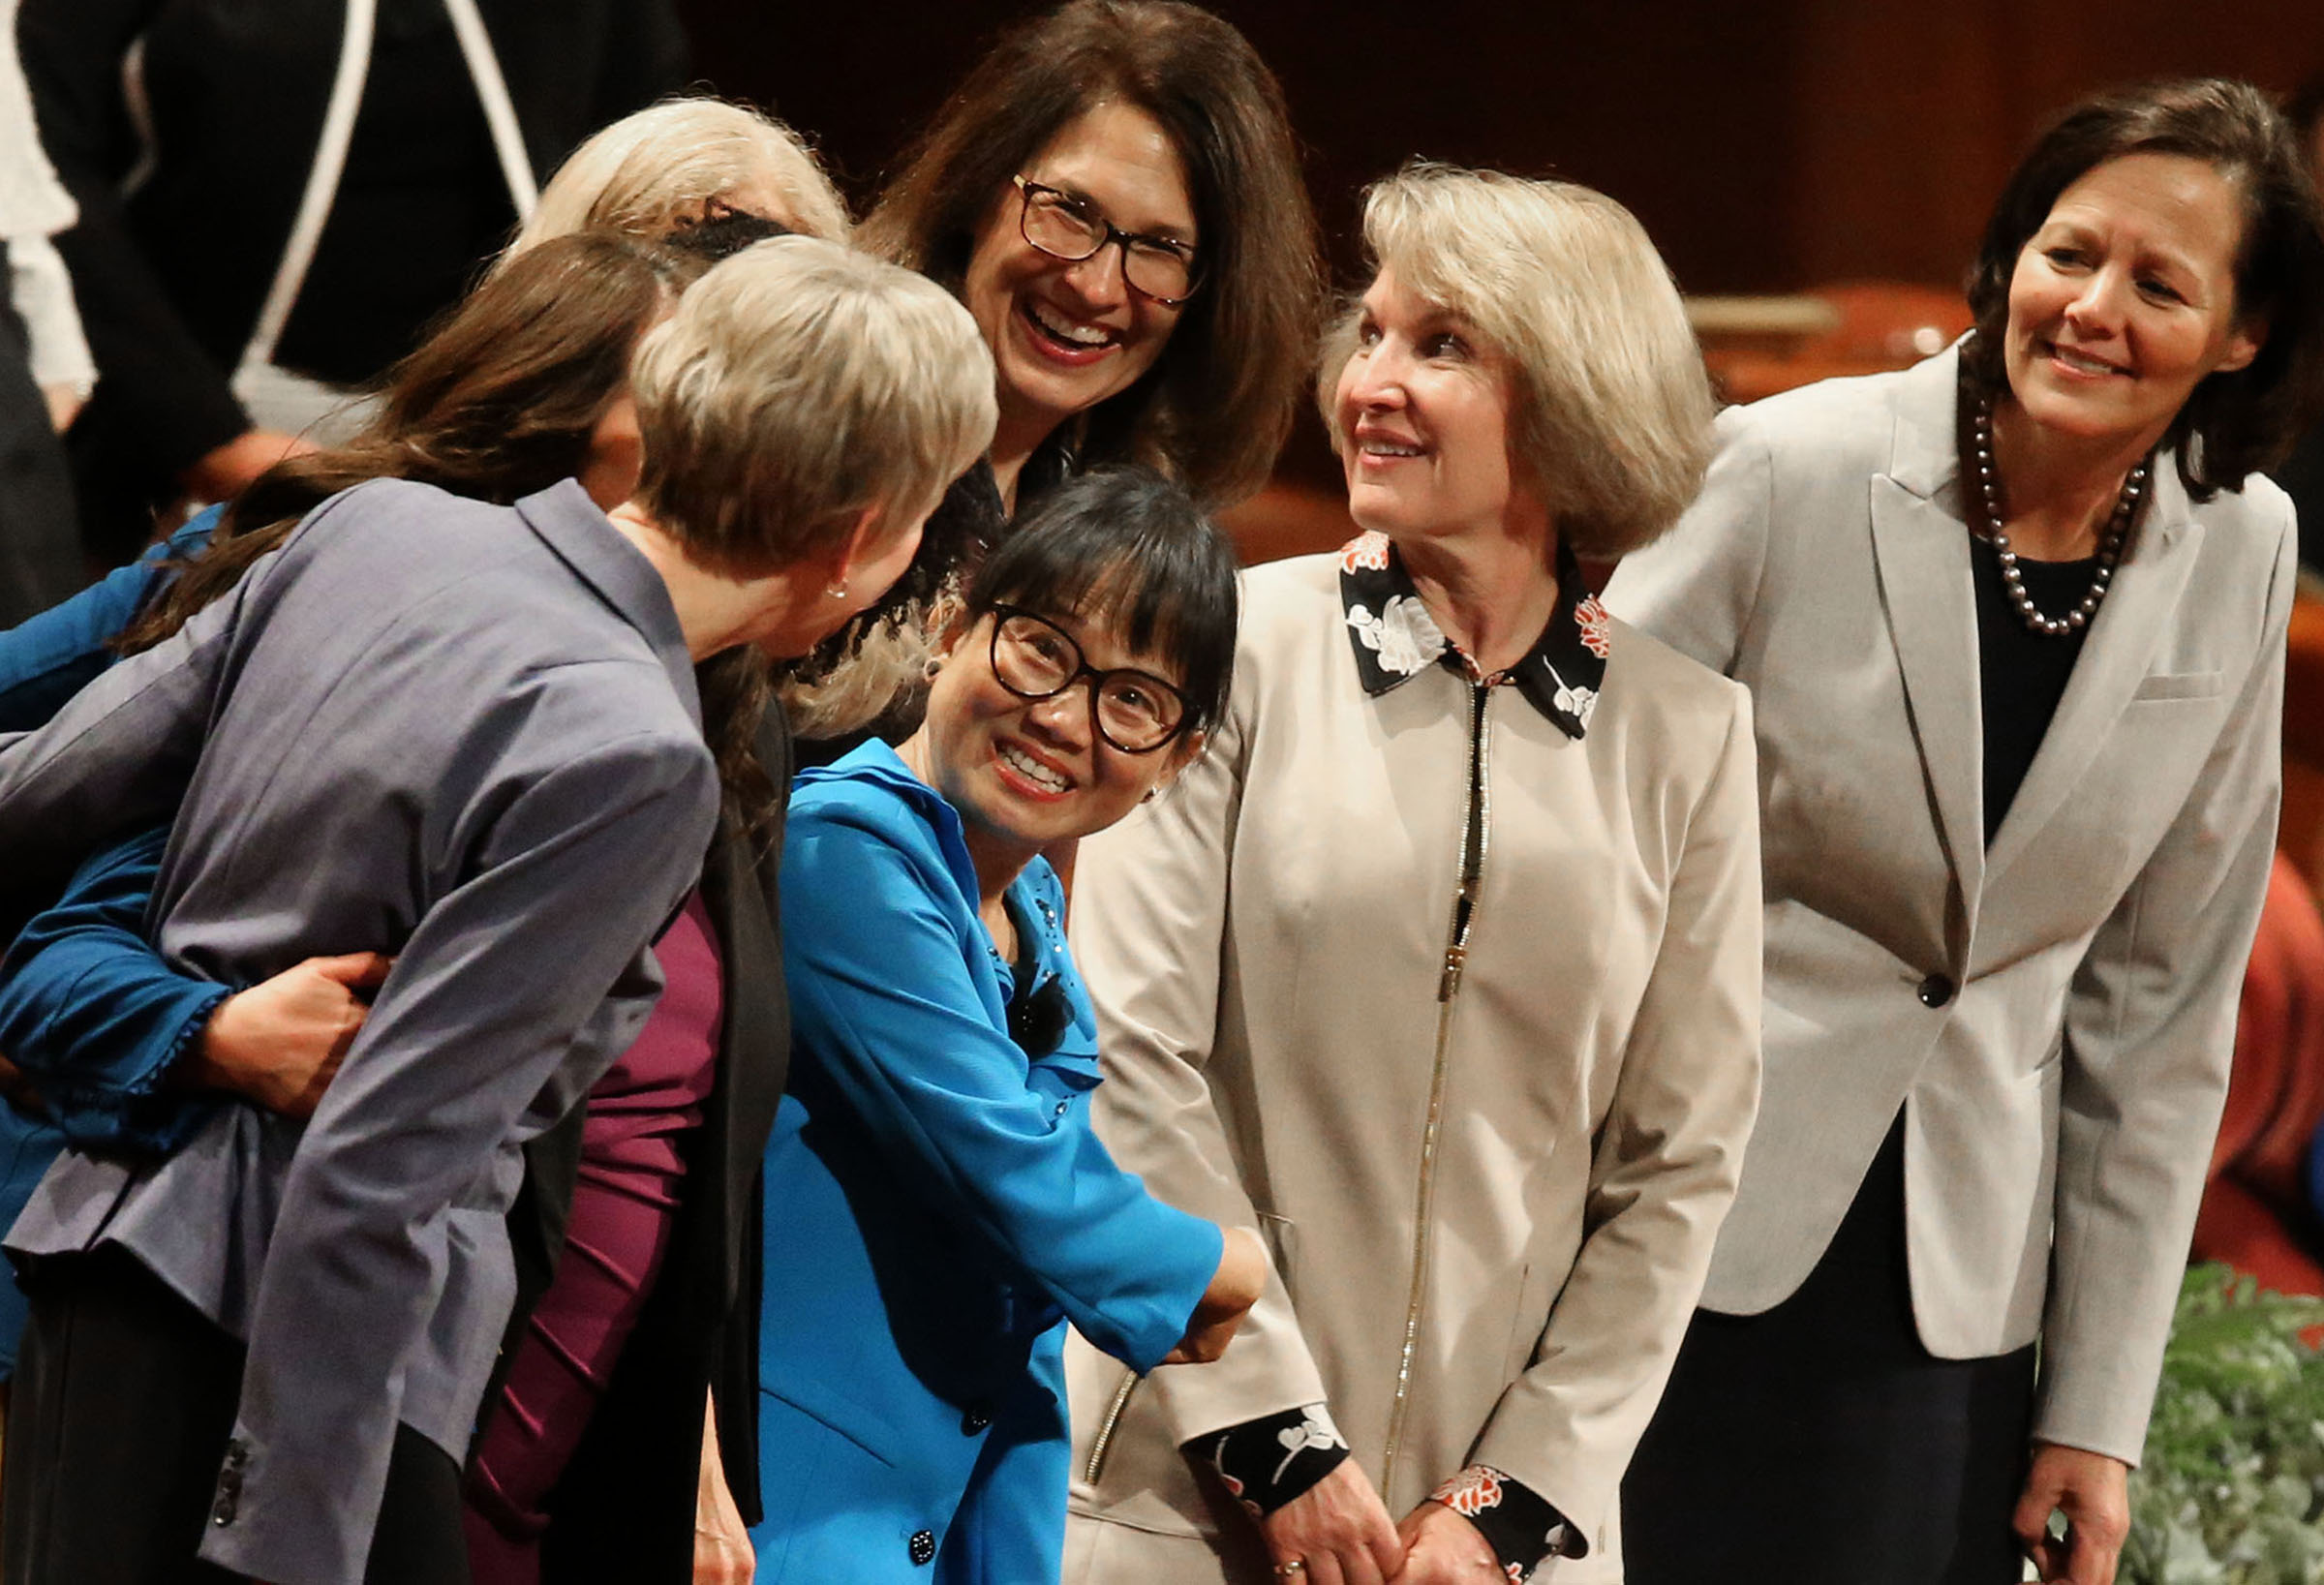 General board members of the Relief Society chat before the general women's session of the 188th Semiannual General Conference of The Church of Jesus Christ of Latter-day Saints held in the Conference Center in downtown Salt Lake City on Saturday, Oct. 6, 2018.